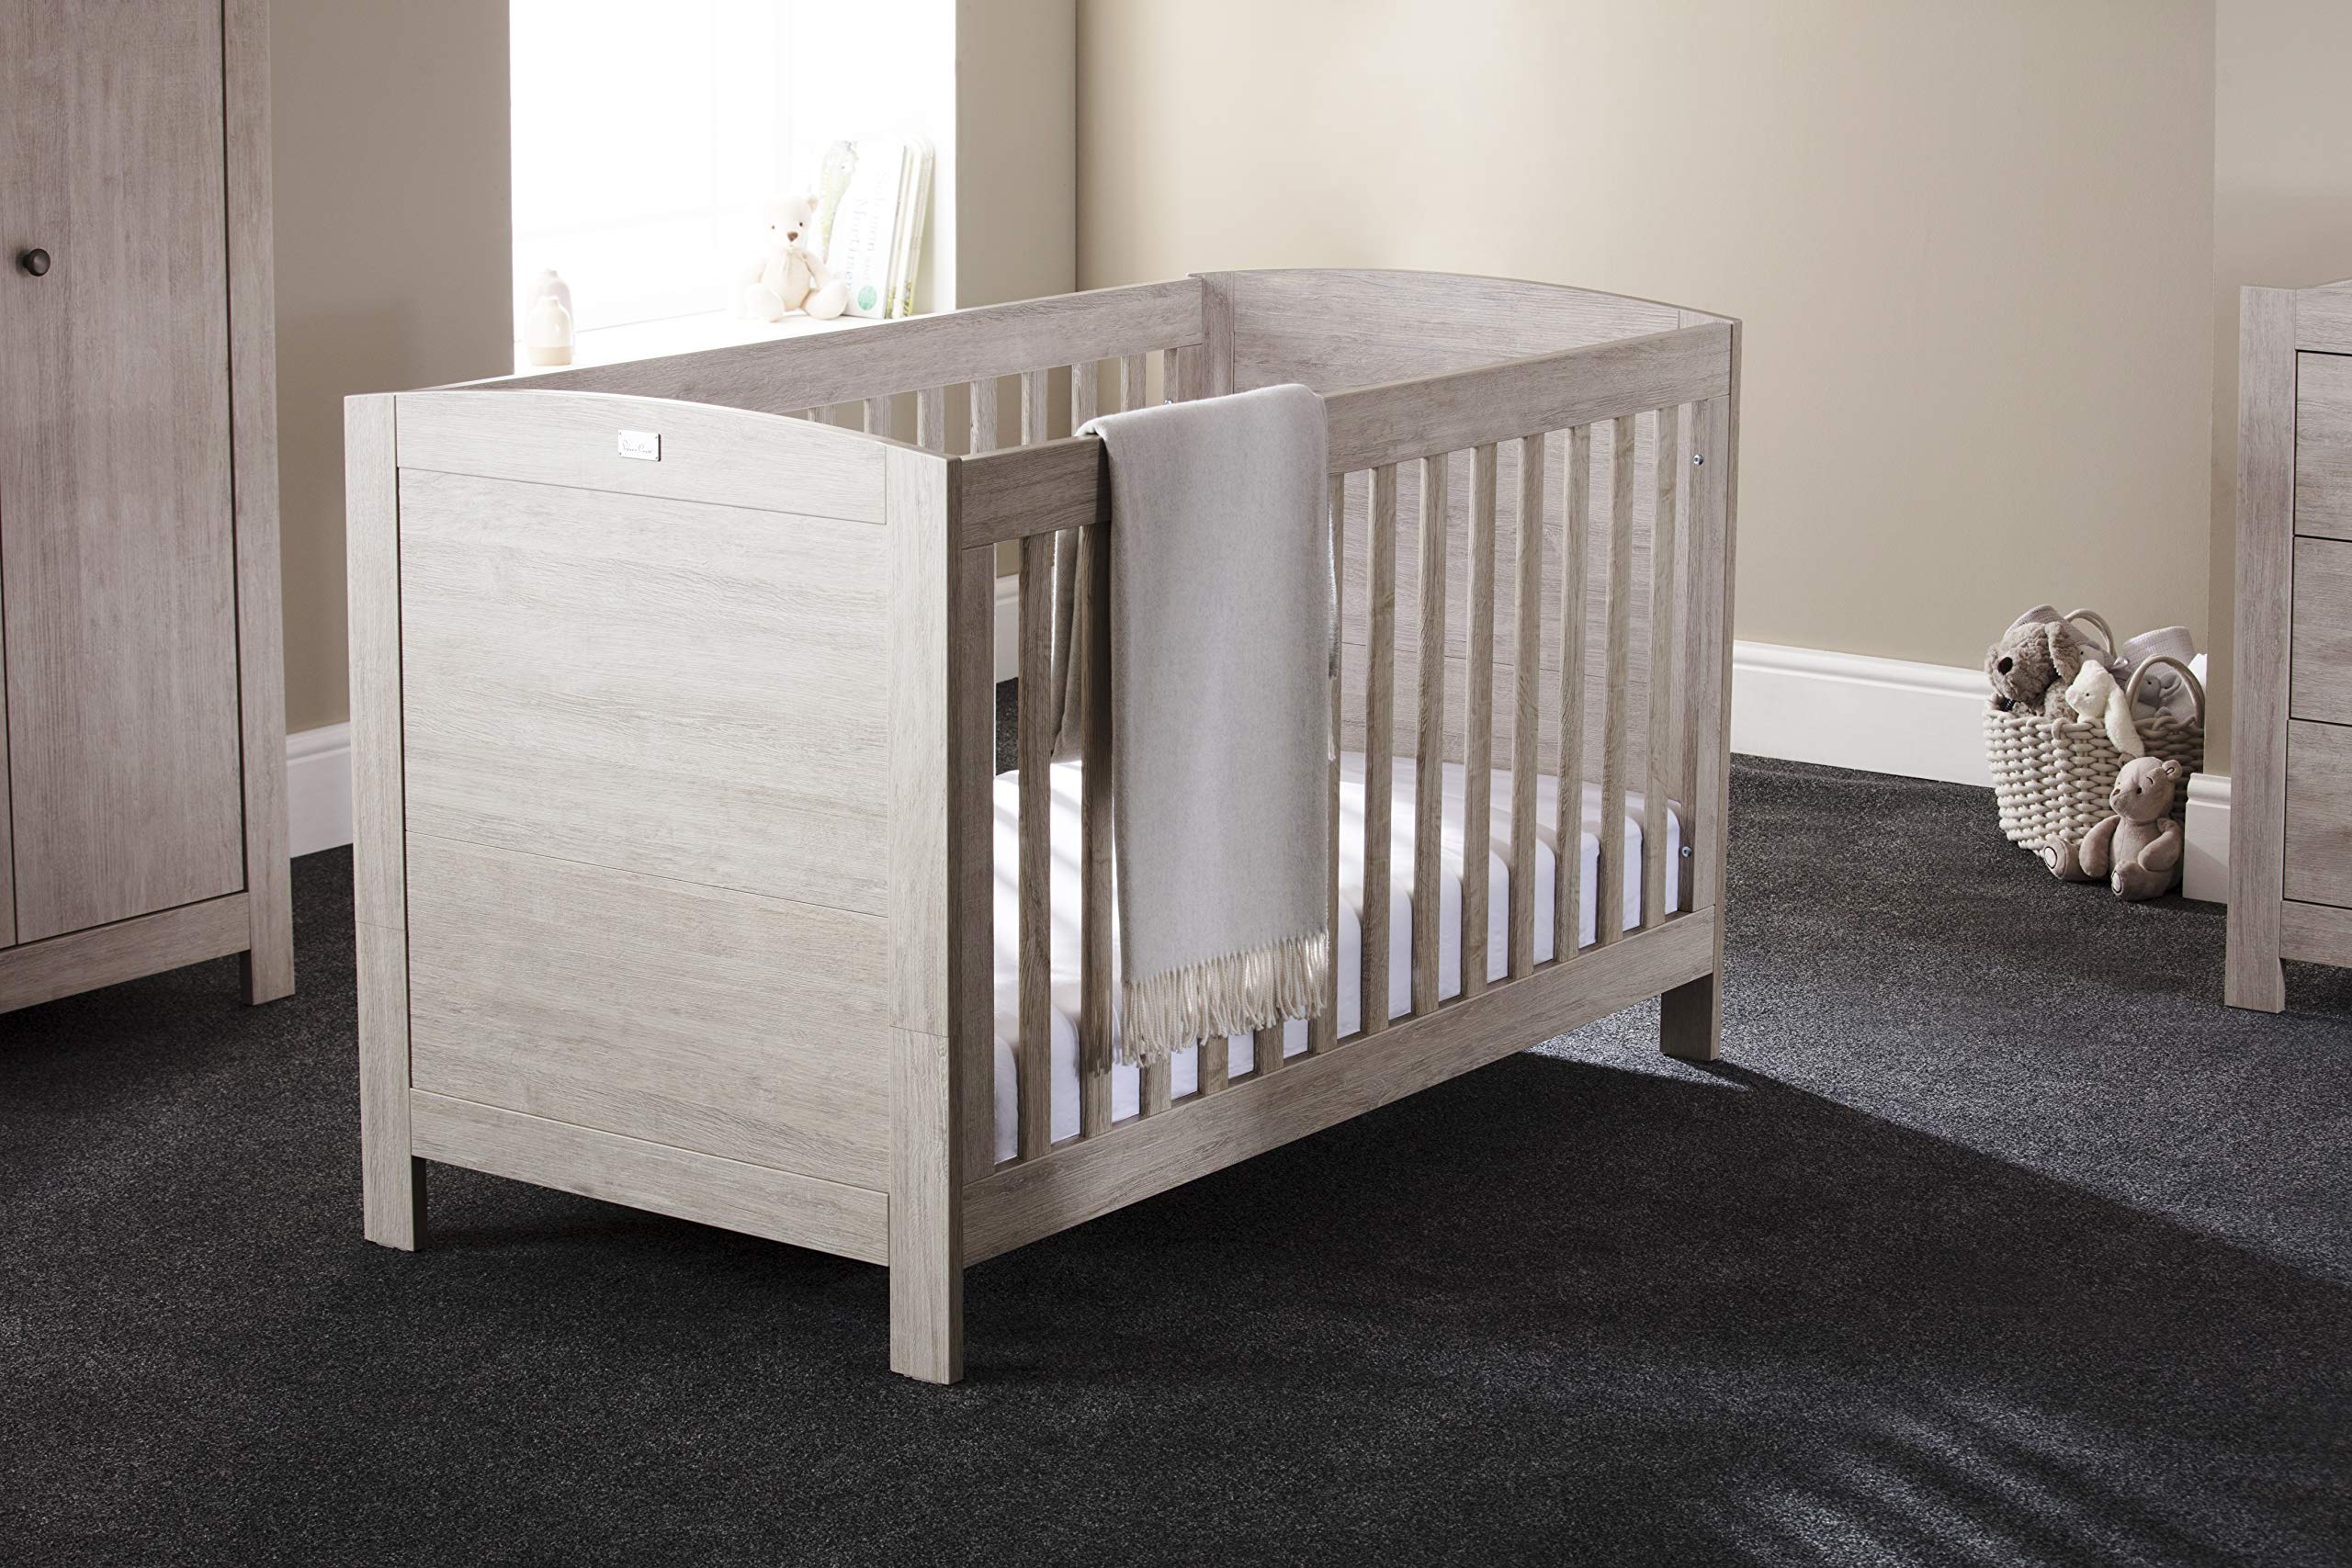 Silver Cross New England Cot Bed and Wardrobe Silver Cross 3 base height positions Suitable from birth to 4 years Converts into toddler bed 7